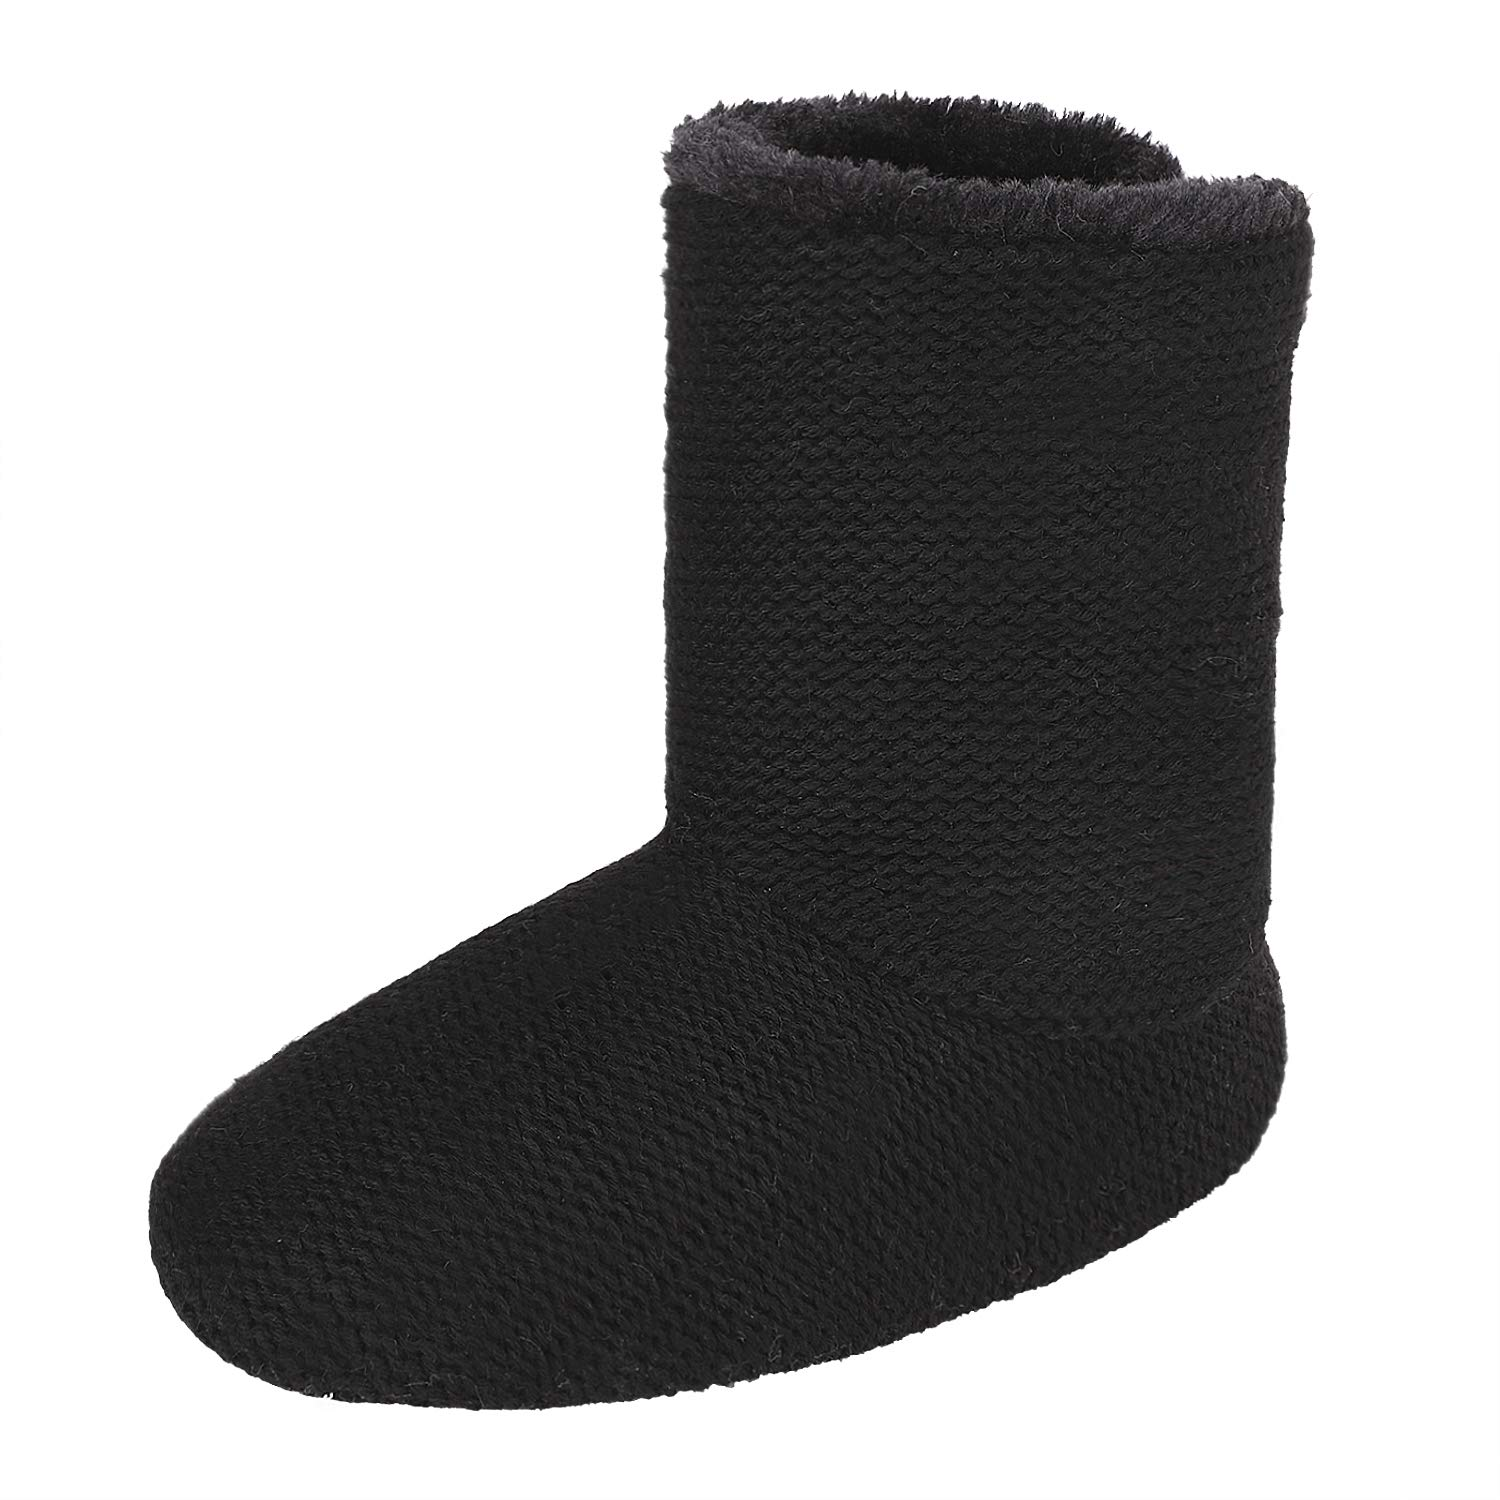 Greenery-GRE Women's Indoor Slippers Winter Warm Cotton Cable Knit Fleece Lined Ankle High Snow Boots Non-Slip Floor Socks (38-39 M EU / 7-8 B(M) US, Black Knitted)